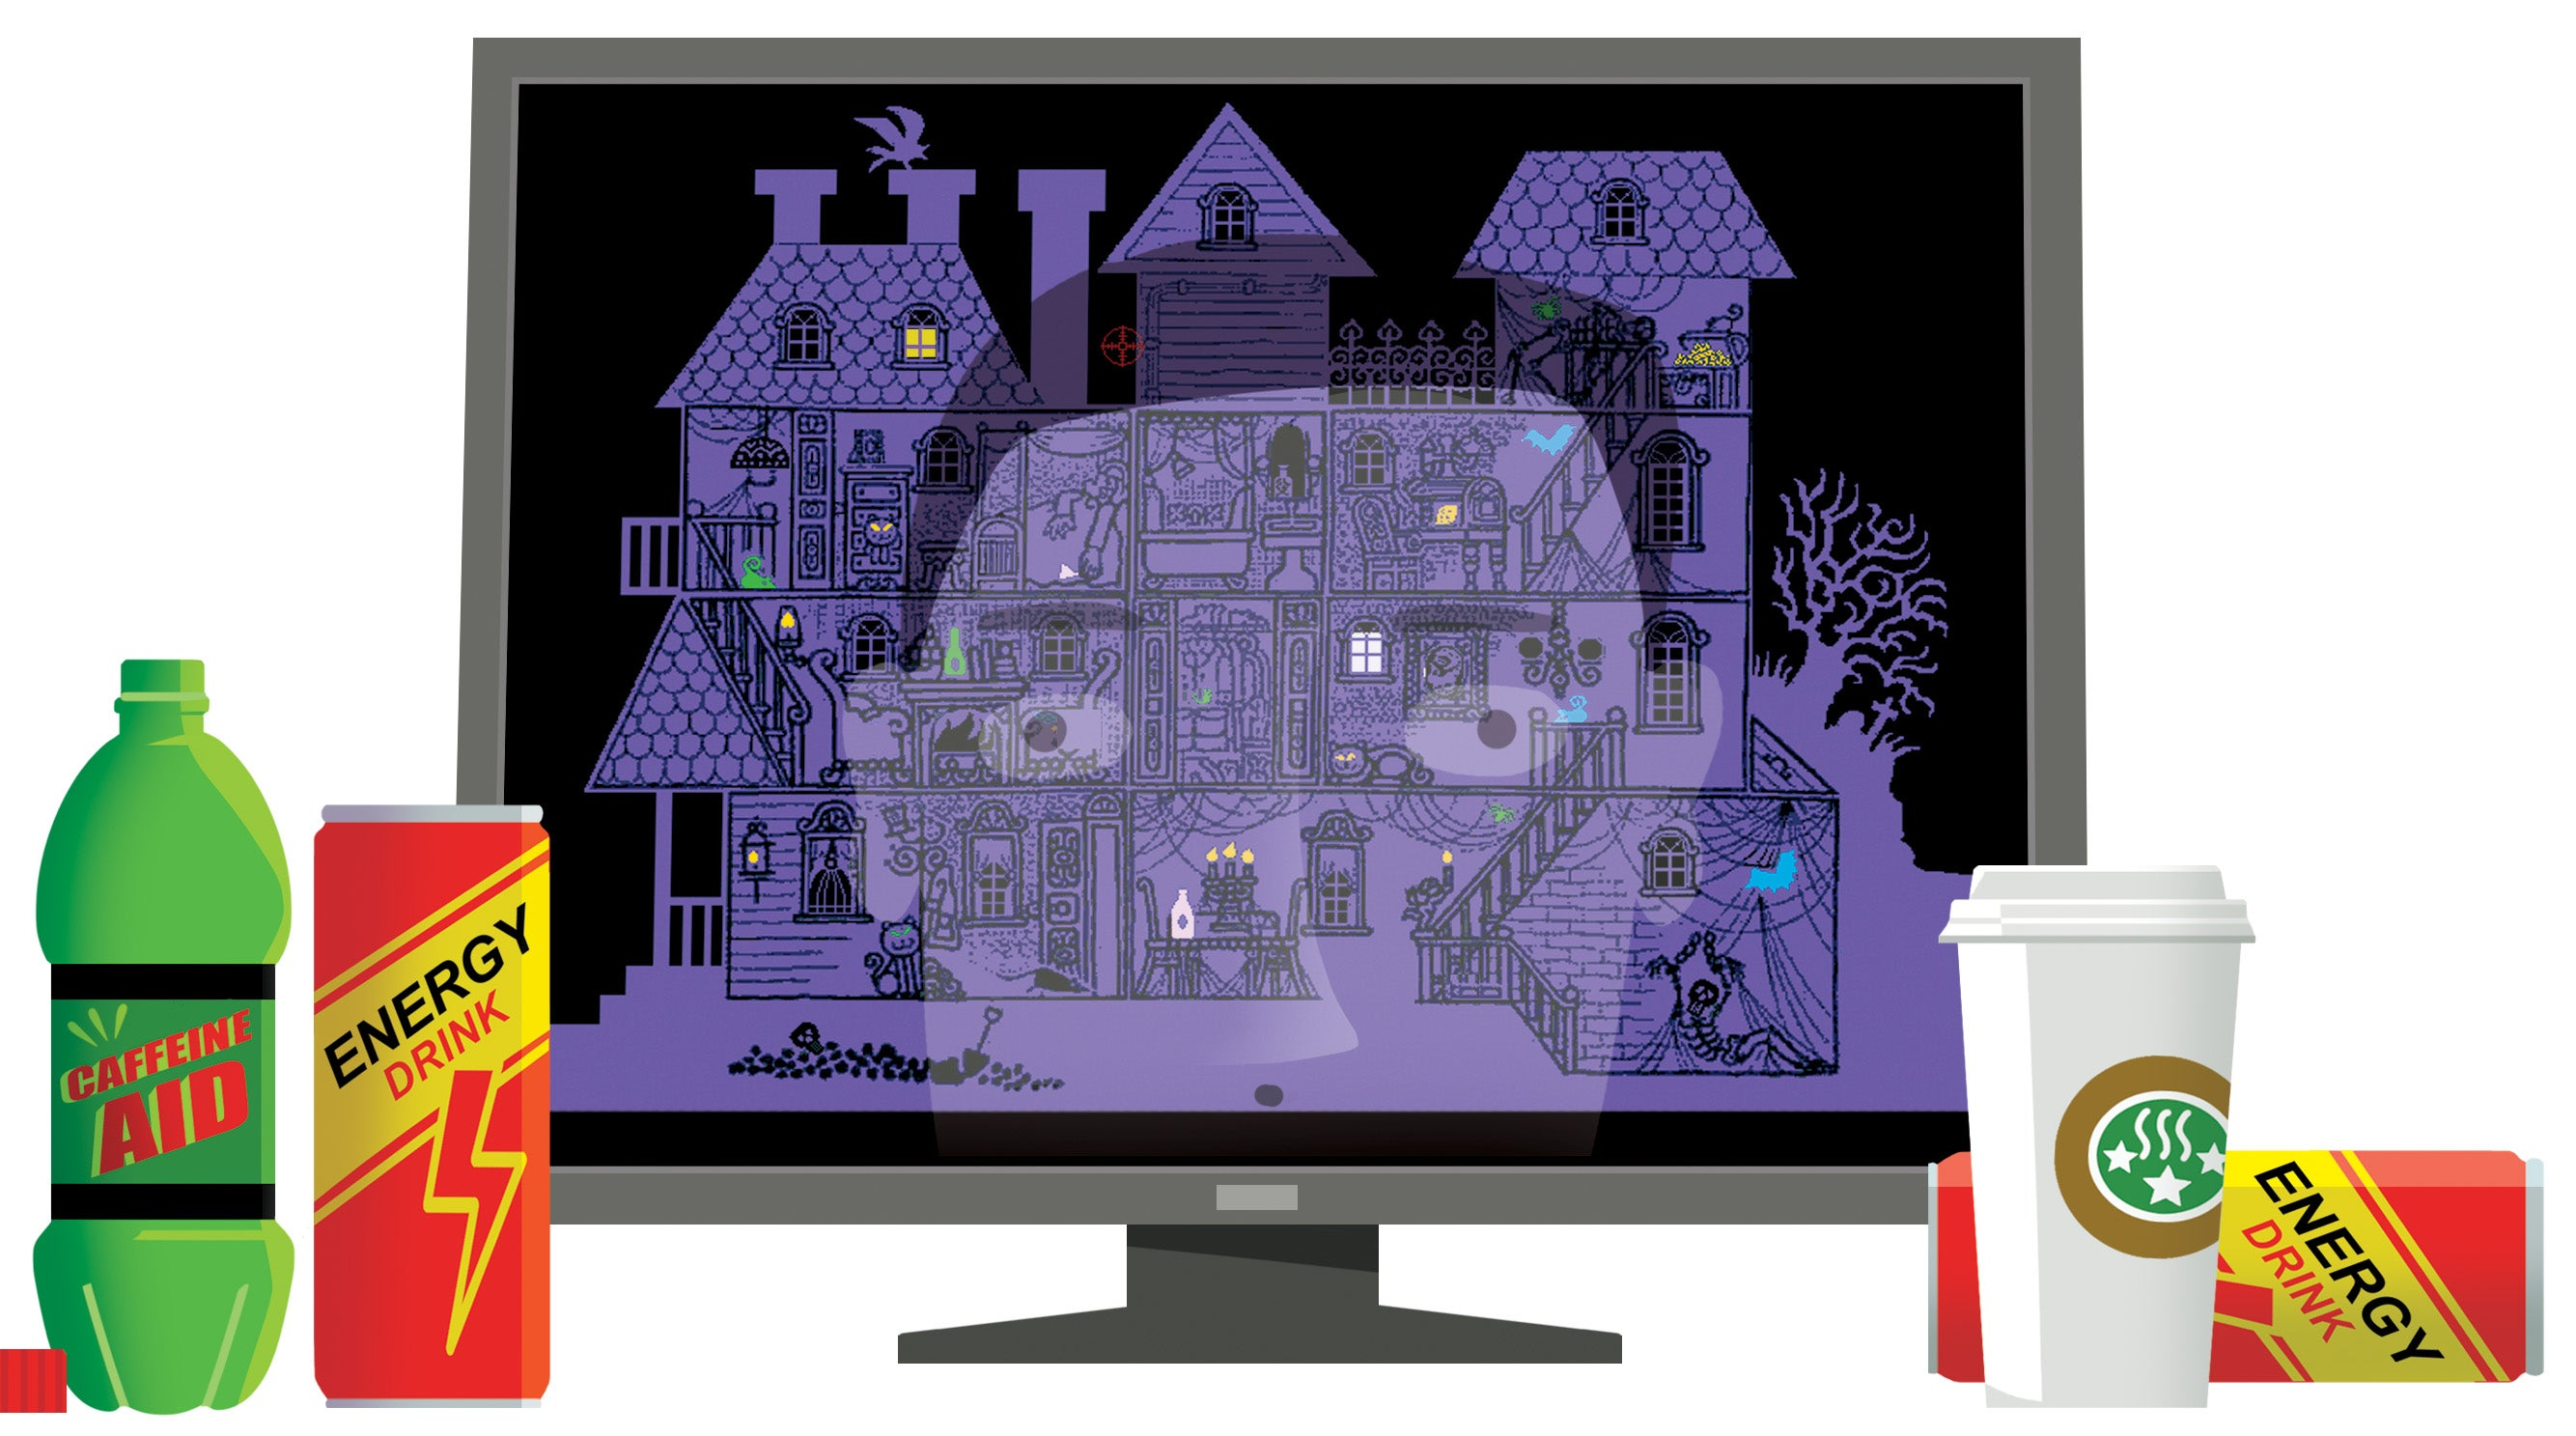 A screen showing a multi-level haunted house reflects the face of the mesmerized gamer, whose discarded caffeine drink containers sit beside the screen